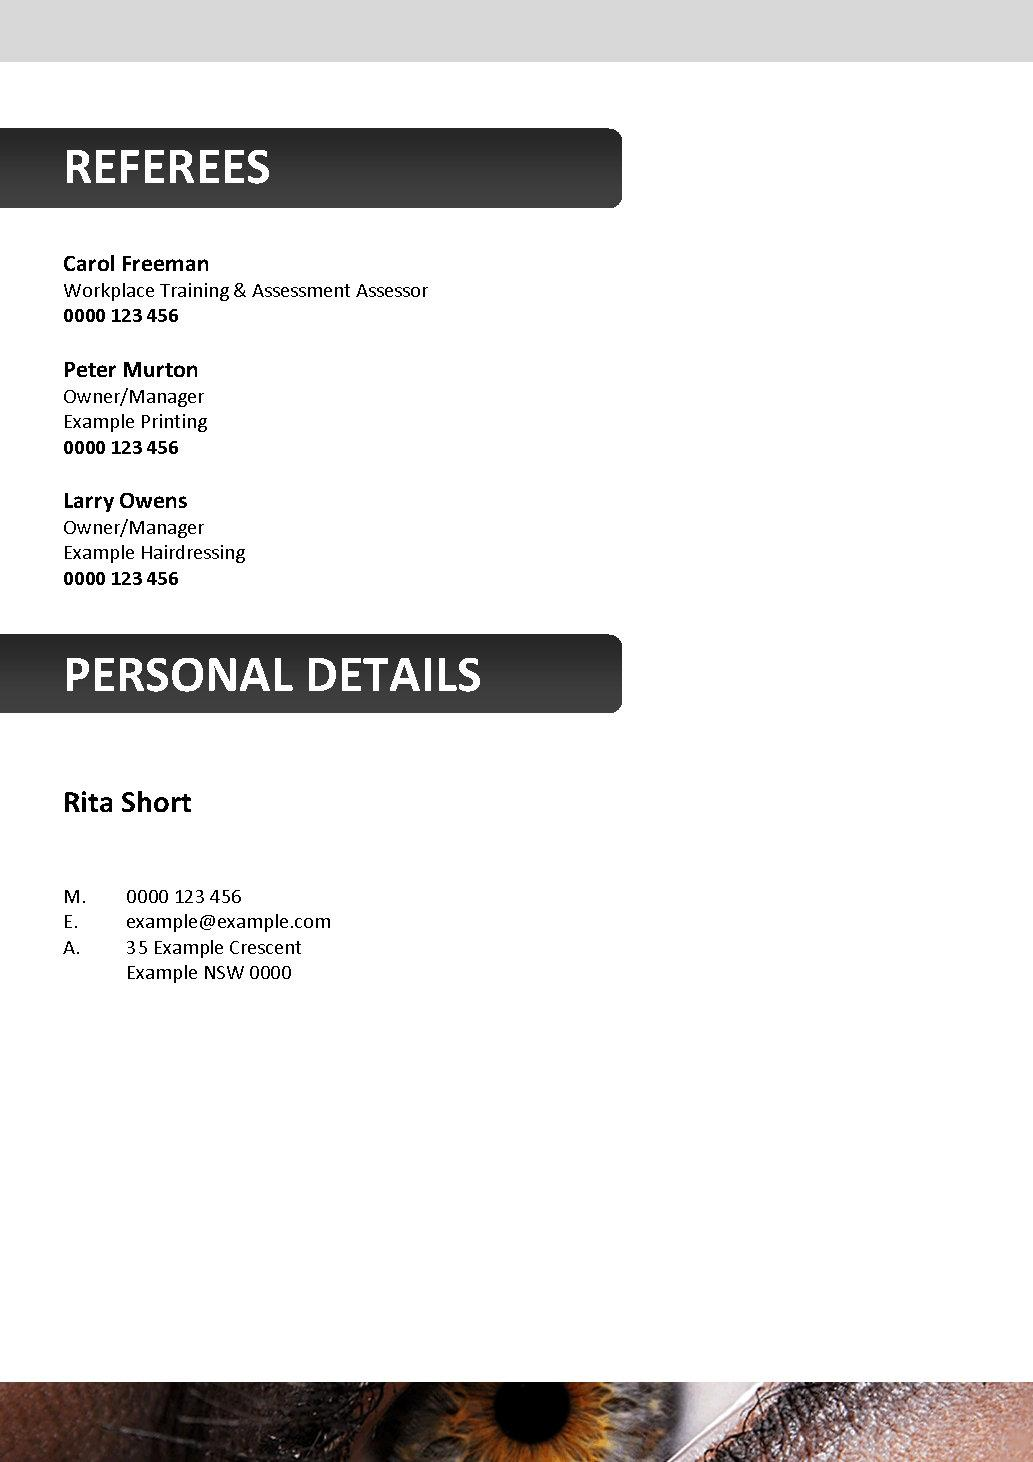 Resume Resume Of Beautician beautician resume electrical estimate template cv samples hospitality templates free downloadable 82296755 sampleshtml